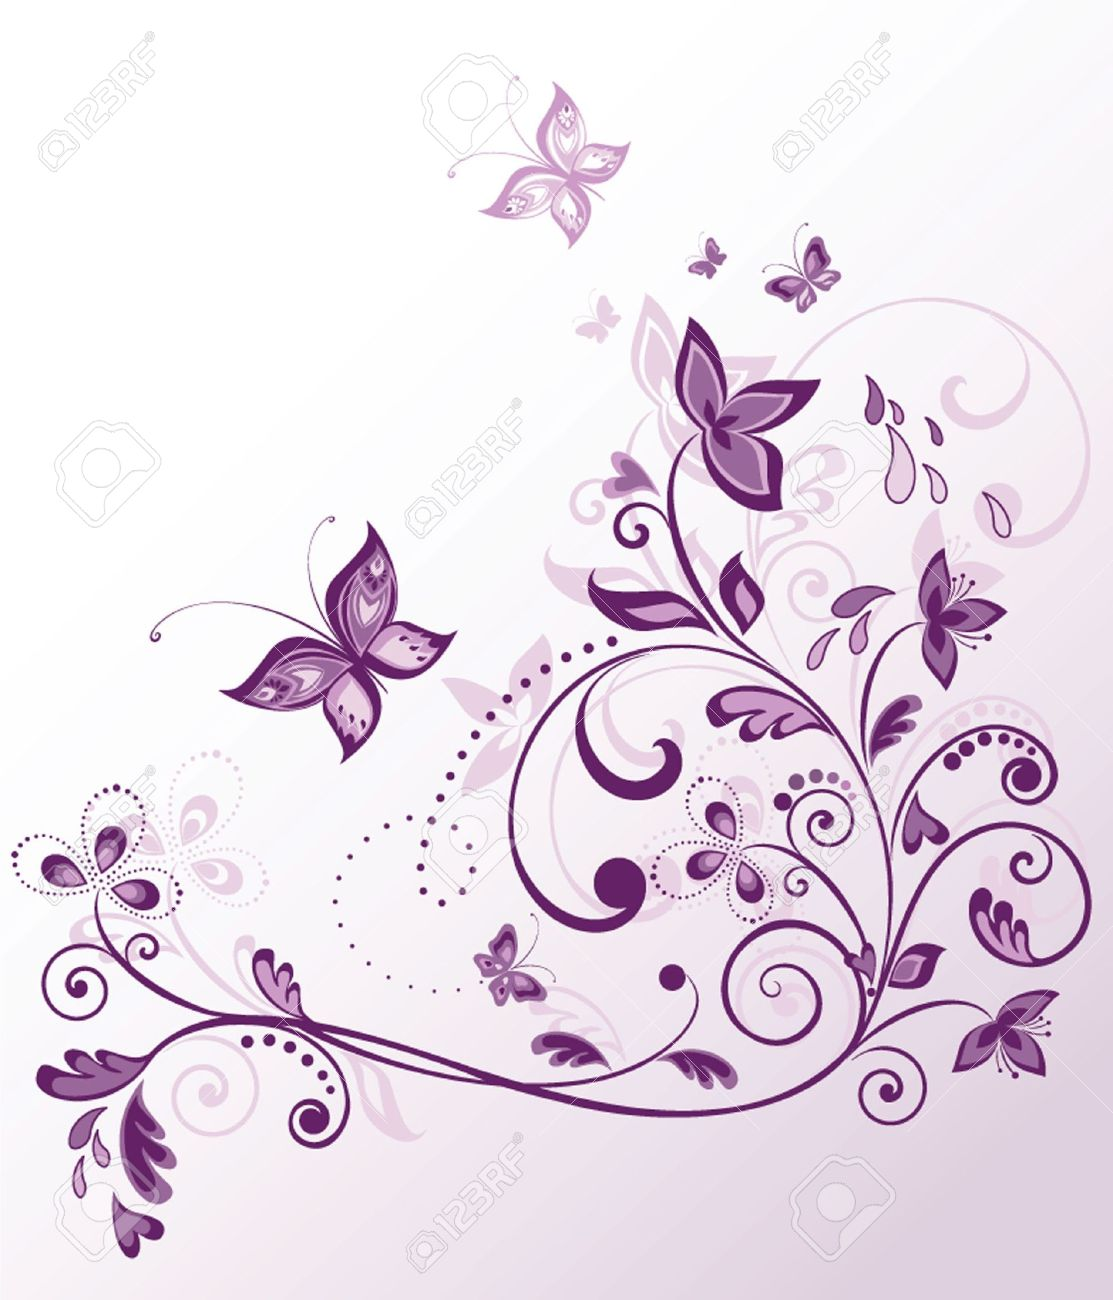 6,188 Violet Butterfly Stock Vector Illustration And Royalty Free.